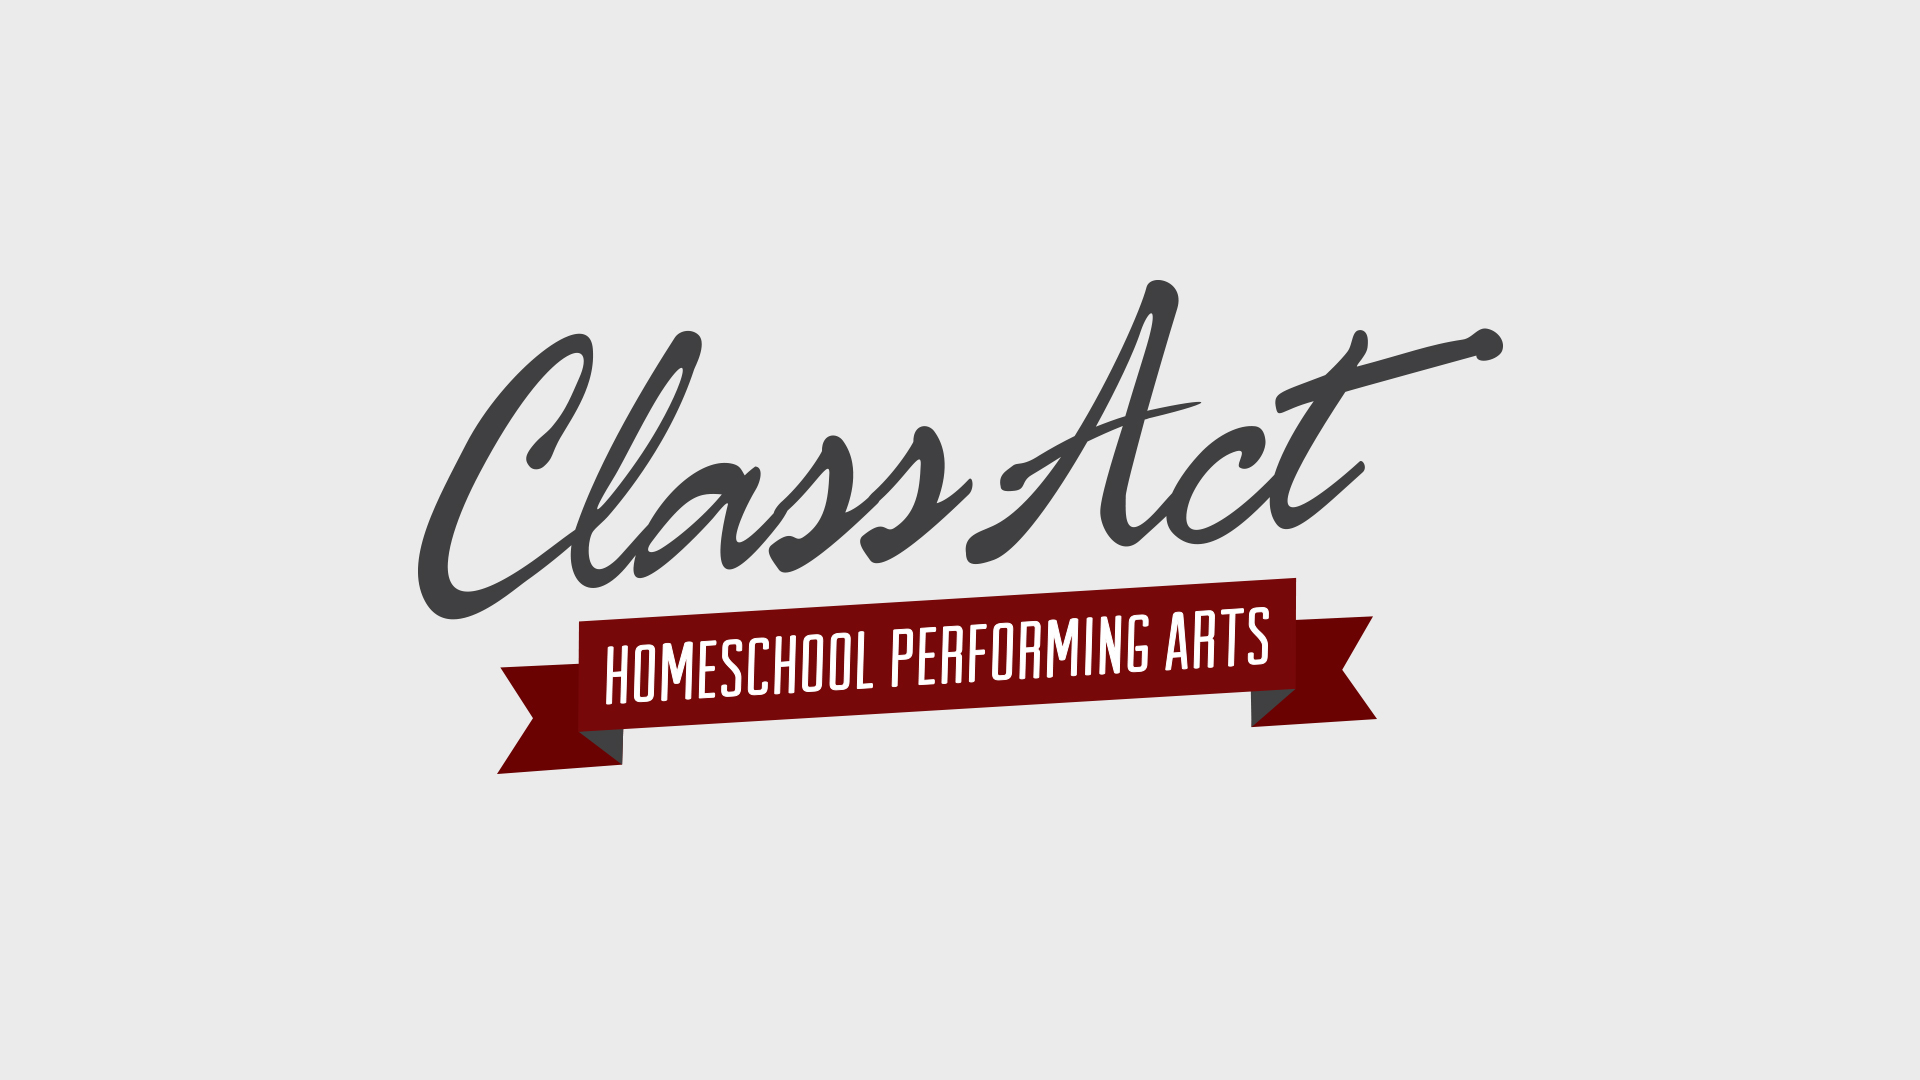 Class Act Homeschool Performing Arts - Through Class Act Homeschool Performing Arts, we offer vocal and music classes for homeschool students ages 6-19. All students will be taught how to read music, sing with correct vocal technique, perform with confidence and integrity, work together in an ensemble, learn self-discipline, and achieve a lifetime of musical success.